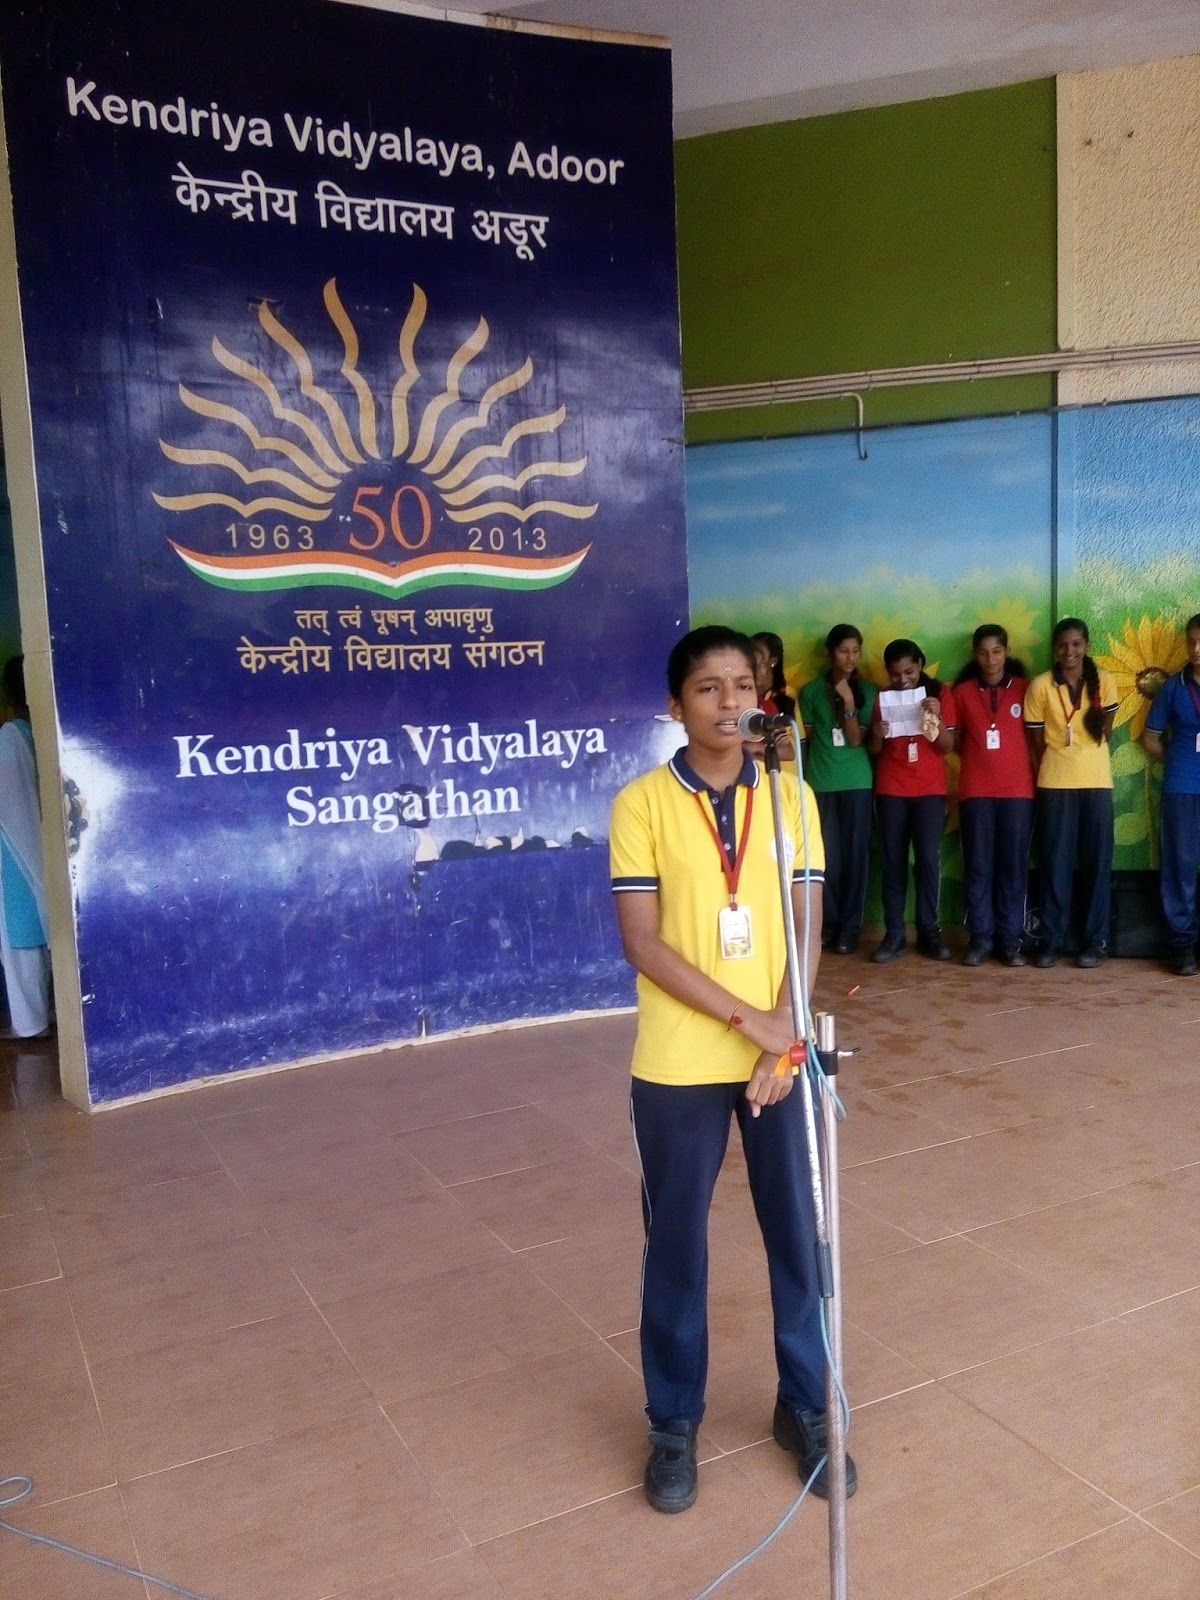 kendriya vidyalaya adoor shift i Welcome to kendriya vidyalaya sangathan, ernakulam region for registration for admission visit: kv adoor bagged first prize in the independence day contest by virsa - routes 2 rootskvs ernakulam region has launched project based learning - visit.